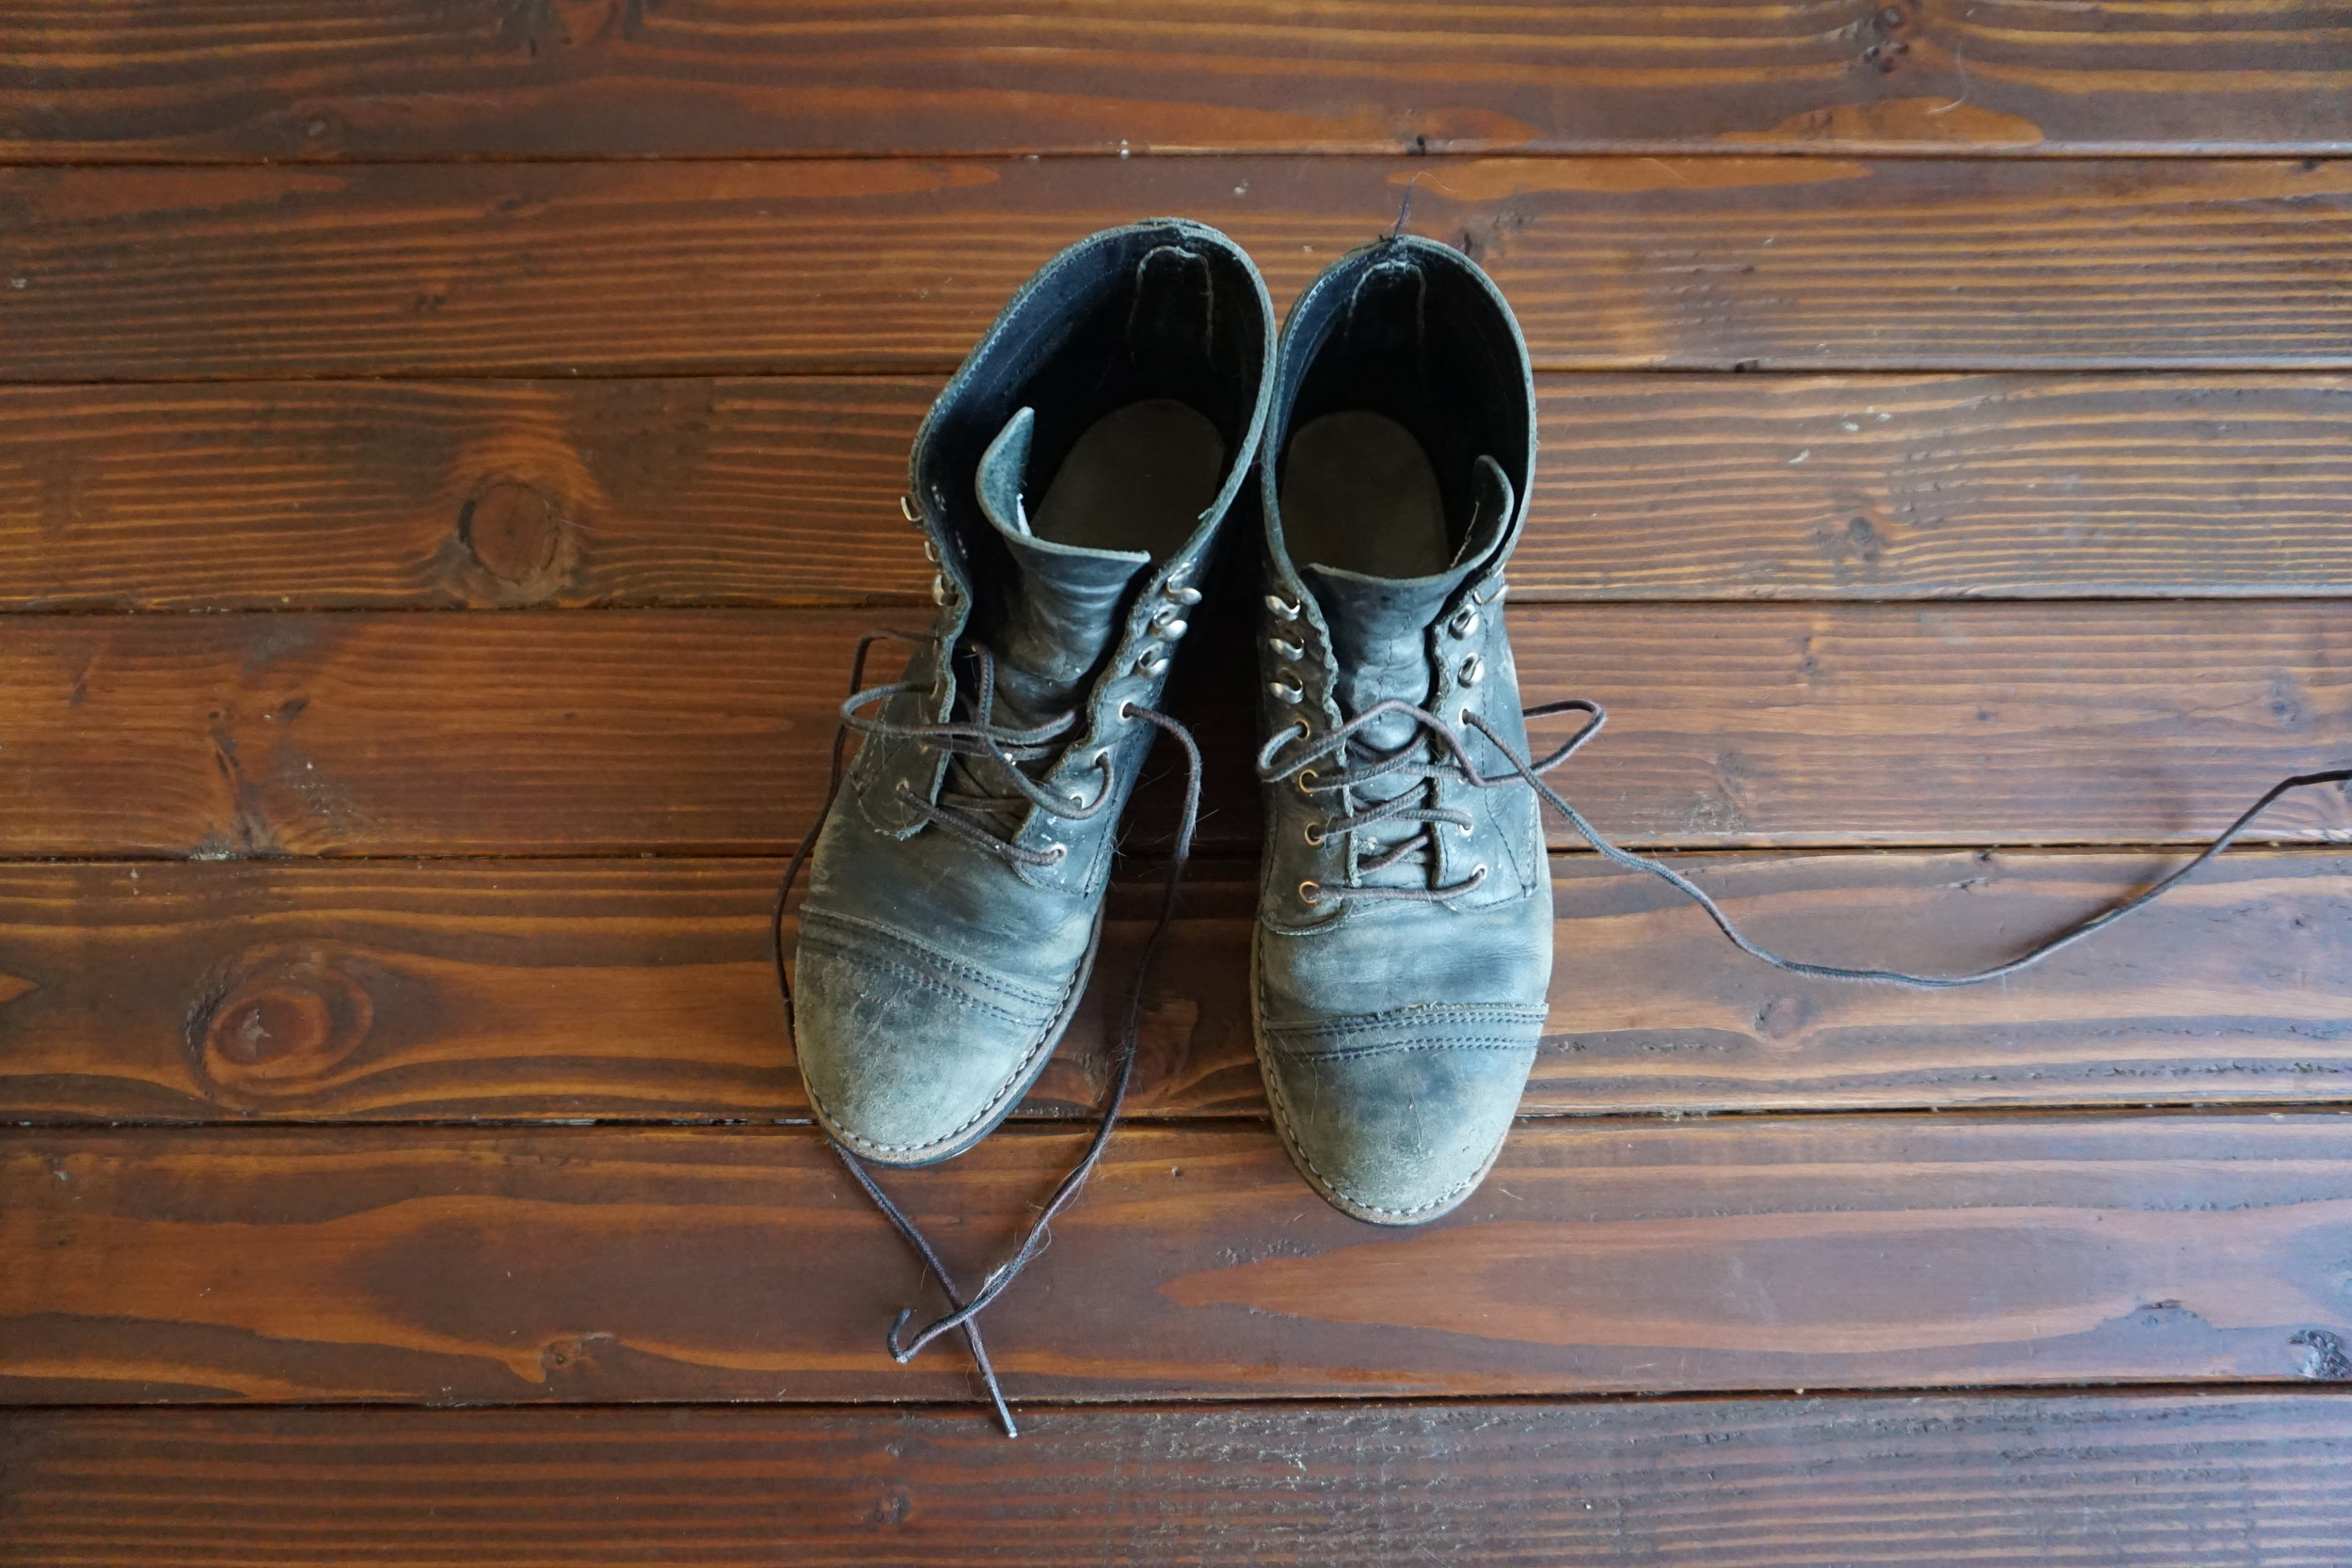 BEFORE- many trips to the desert, campouts, DIY projects and long days on these boots